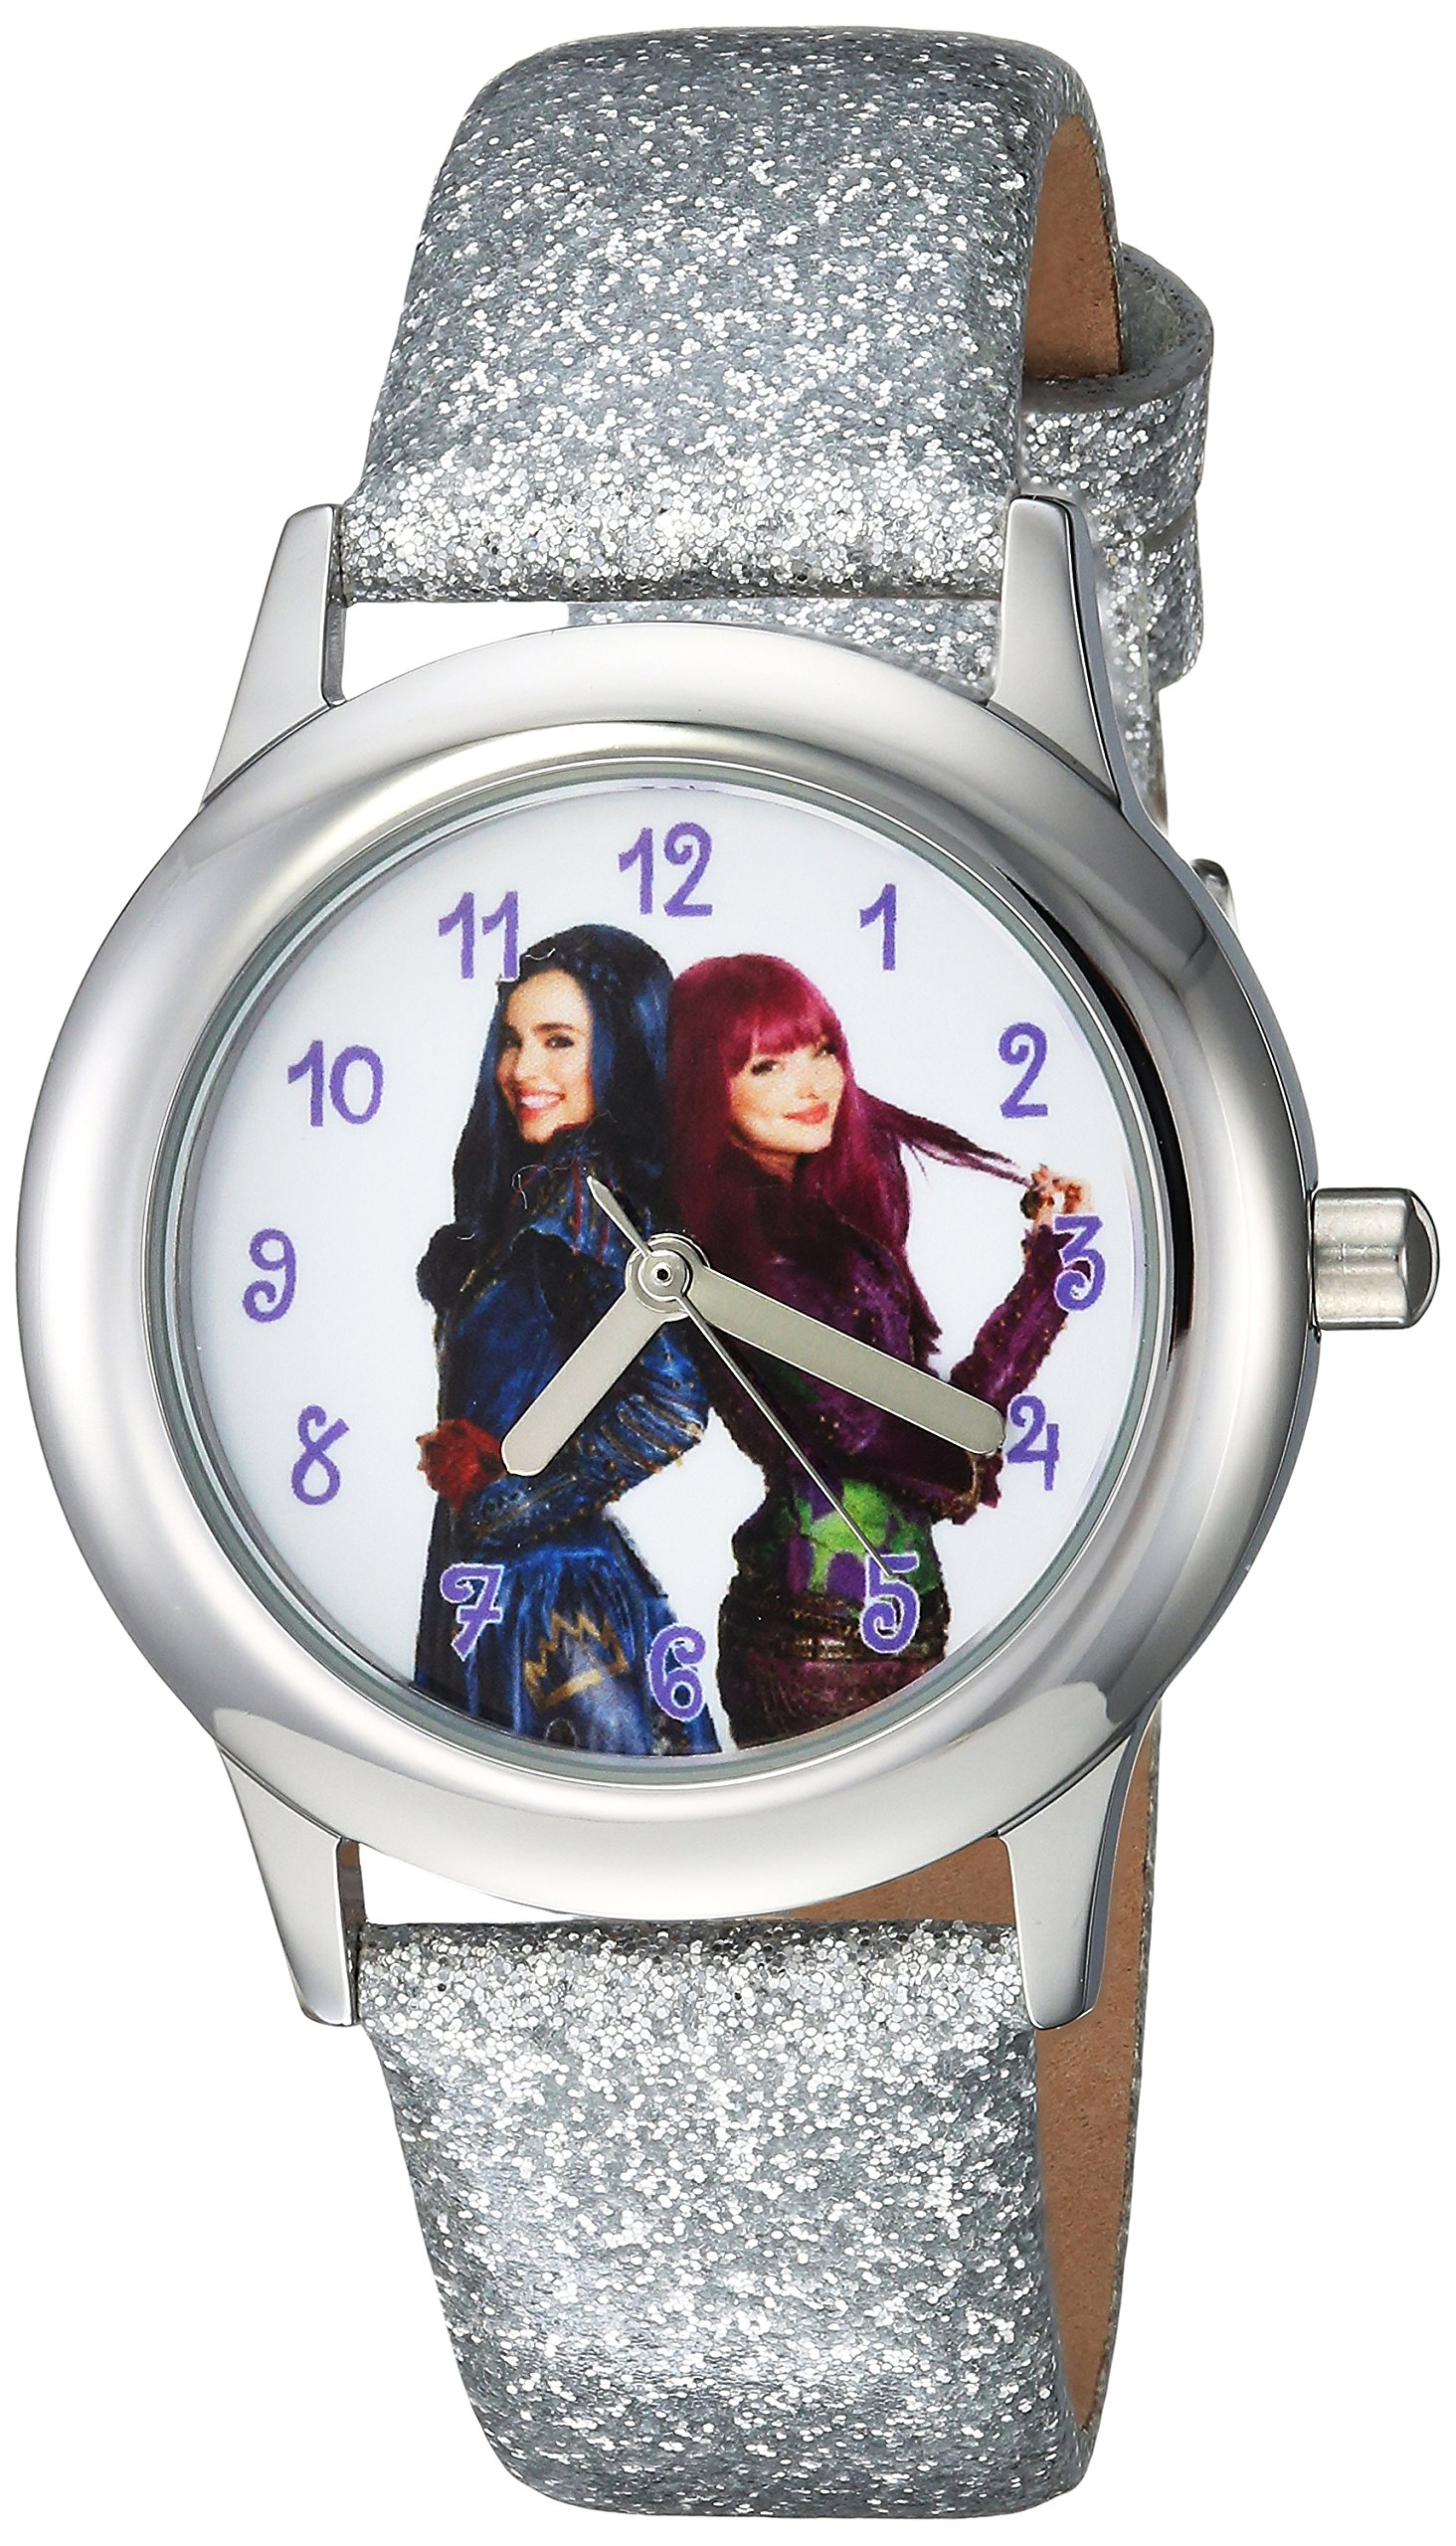 DISNEY Girls Descendants 2 Stainless Steel Analog-Quartz Watch with Leather-Synthetic Strap, Silver, 15 (Model: WDS000253) by Disney